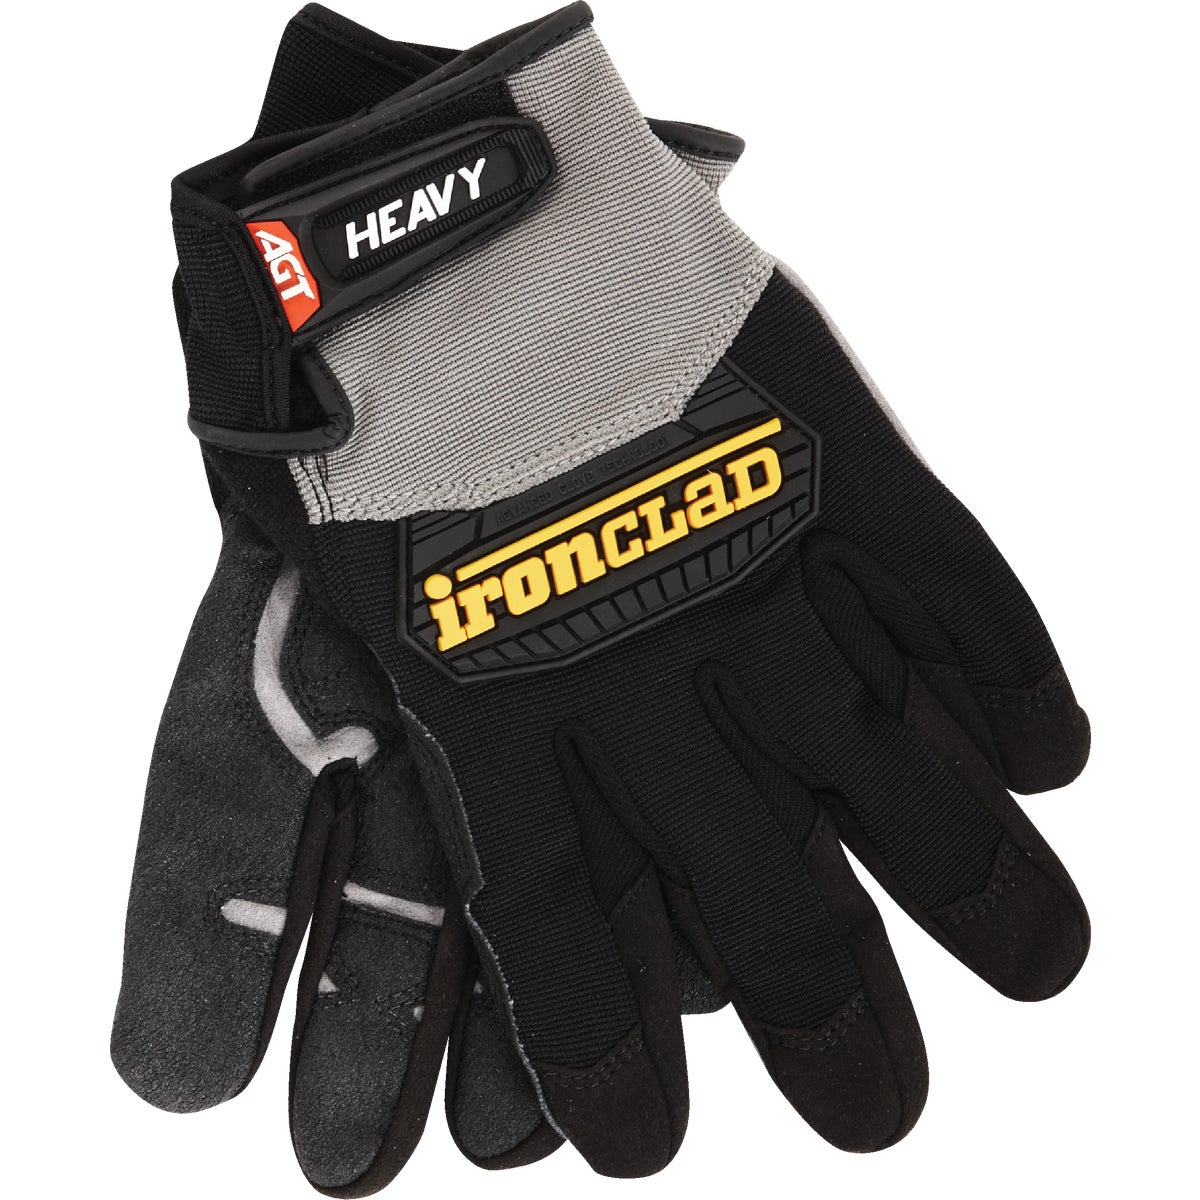 MED HEAVY UTILITY GLOVE - HUG-03-M by Ironclad Performance